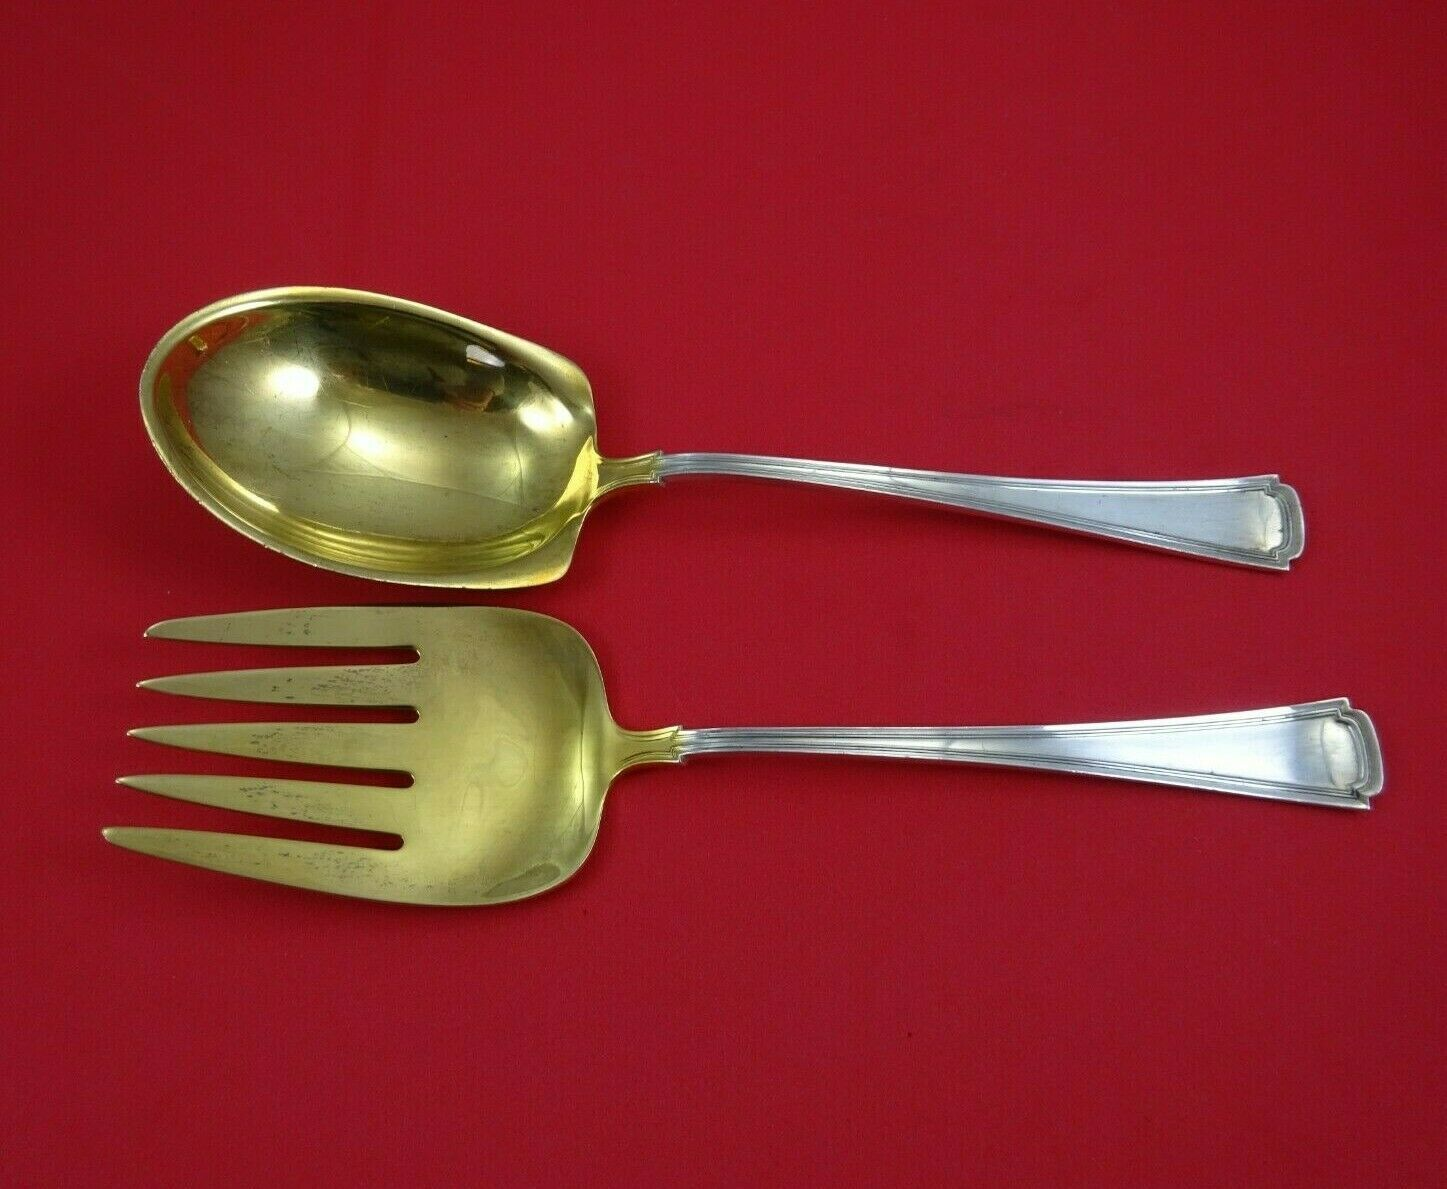 Primary image for Cortland by Lunt Sterling Silver Salad Serving Set 2pc All Sterling GW 8 1/2""